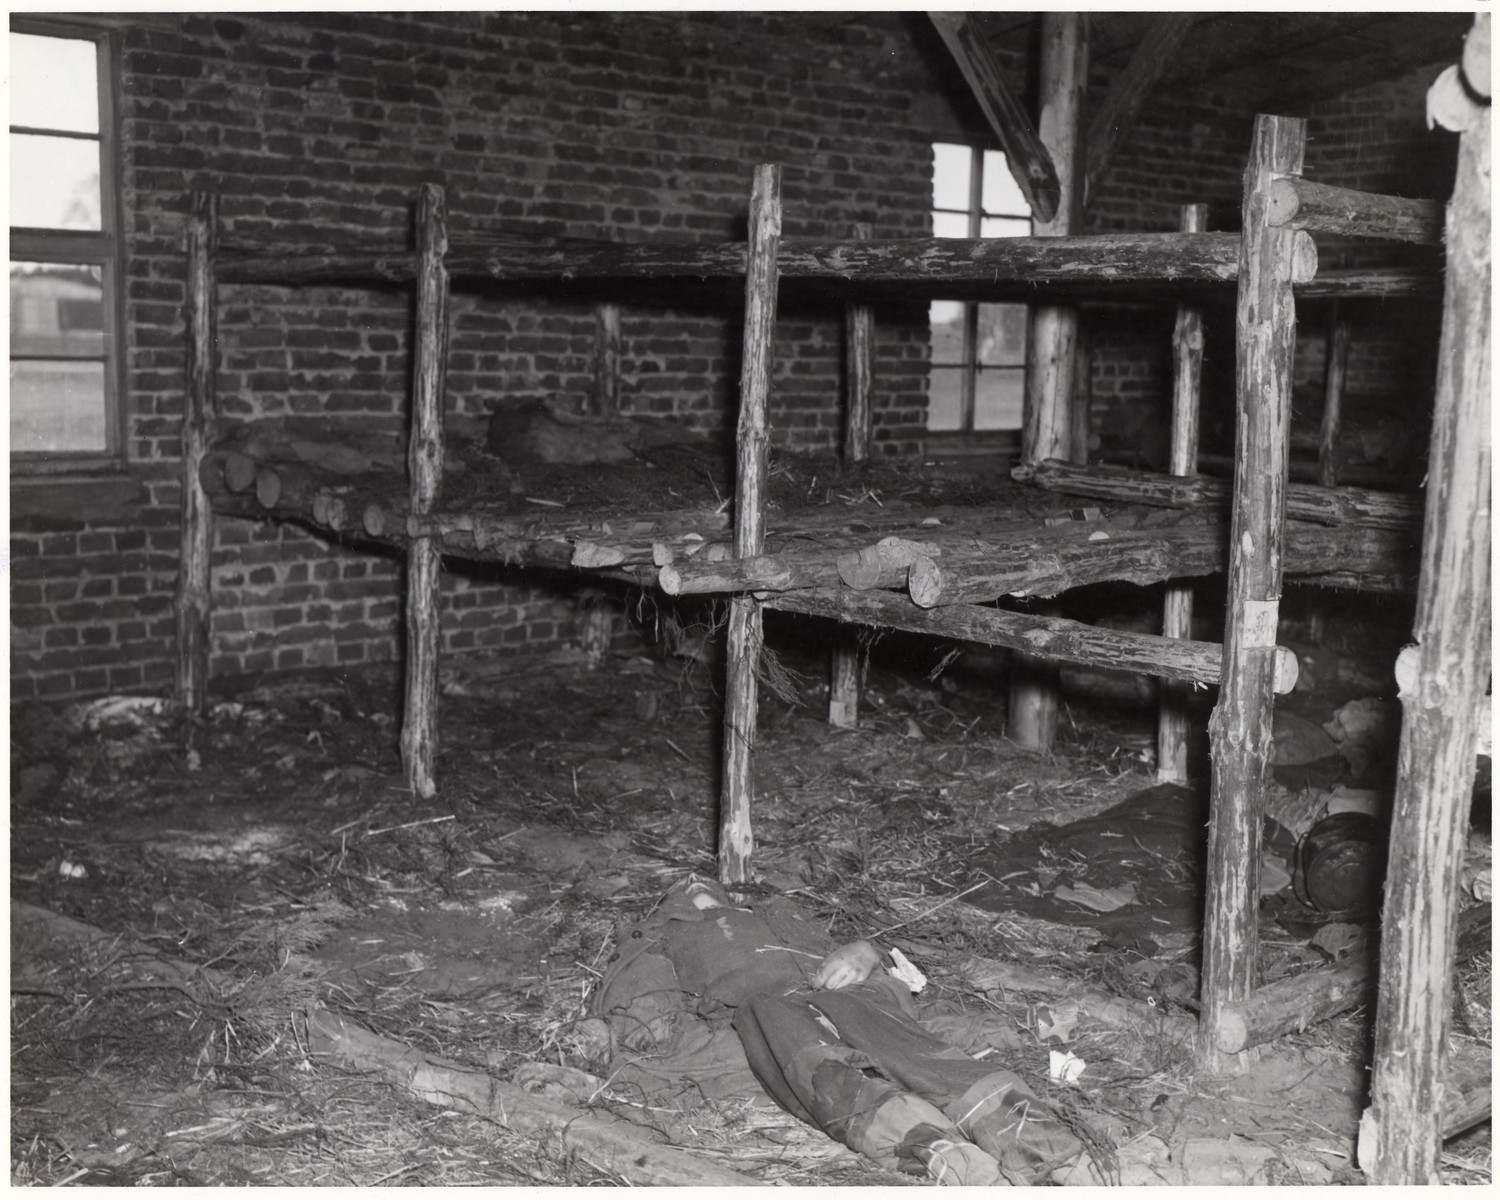 "The body of a starved prisoner lies on the floor of a barrracks of the Woebbelin concentration camp.  The original caption reads:: ""Wobblin Concentration Camp (No.8 of 13 photos).  he camp, recently captured by troops of the U.S. Ninth Army, had many prisoners who starved to death. Here one lies dead on the floor in the living quarters of the prisoners.  82nd Airborne Div., Wobbelin, Germany. 5/4/45.""  Original caption from donated photograph:  ""A dead inmate lies on the floor of one of the filthy ""bedrooms"" of the concentration camp at Webblin.  U.S. troops liberating this atrocity center described it as one of the worst in Germany.  Hundreds of dead prisoners were found piled up in one building and hundreds were discovered in crude, hastily dug pits.  Into one mass grave the Germans had tossed the corpses of 300 slave laborers of various nationalities.  Of the original 4,000 prisoners, it is estimated that 150 died daily, mostly from inhuman treatment and starvation.  German residents of the area were ordered to exhume the bodies and provide respectable burial."""